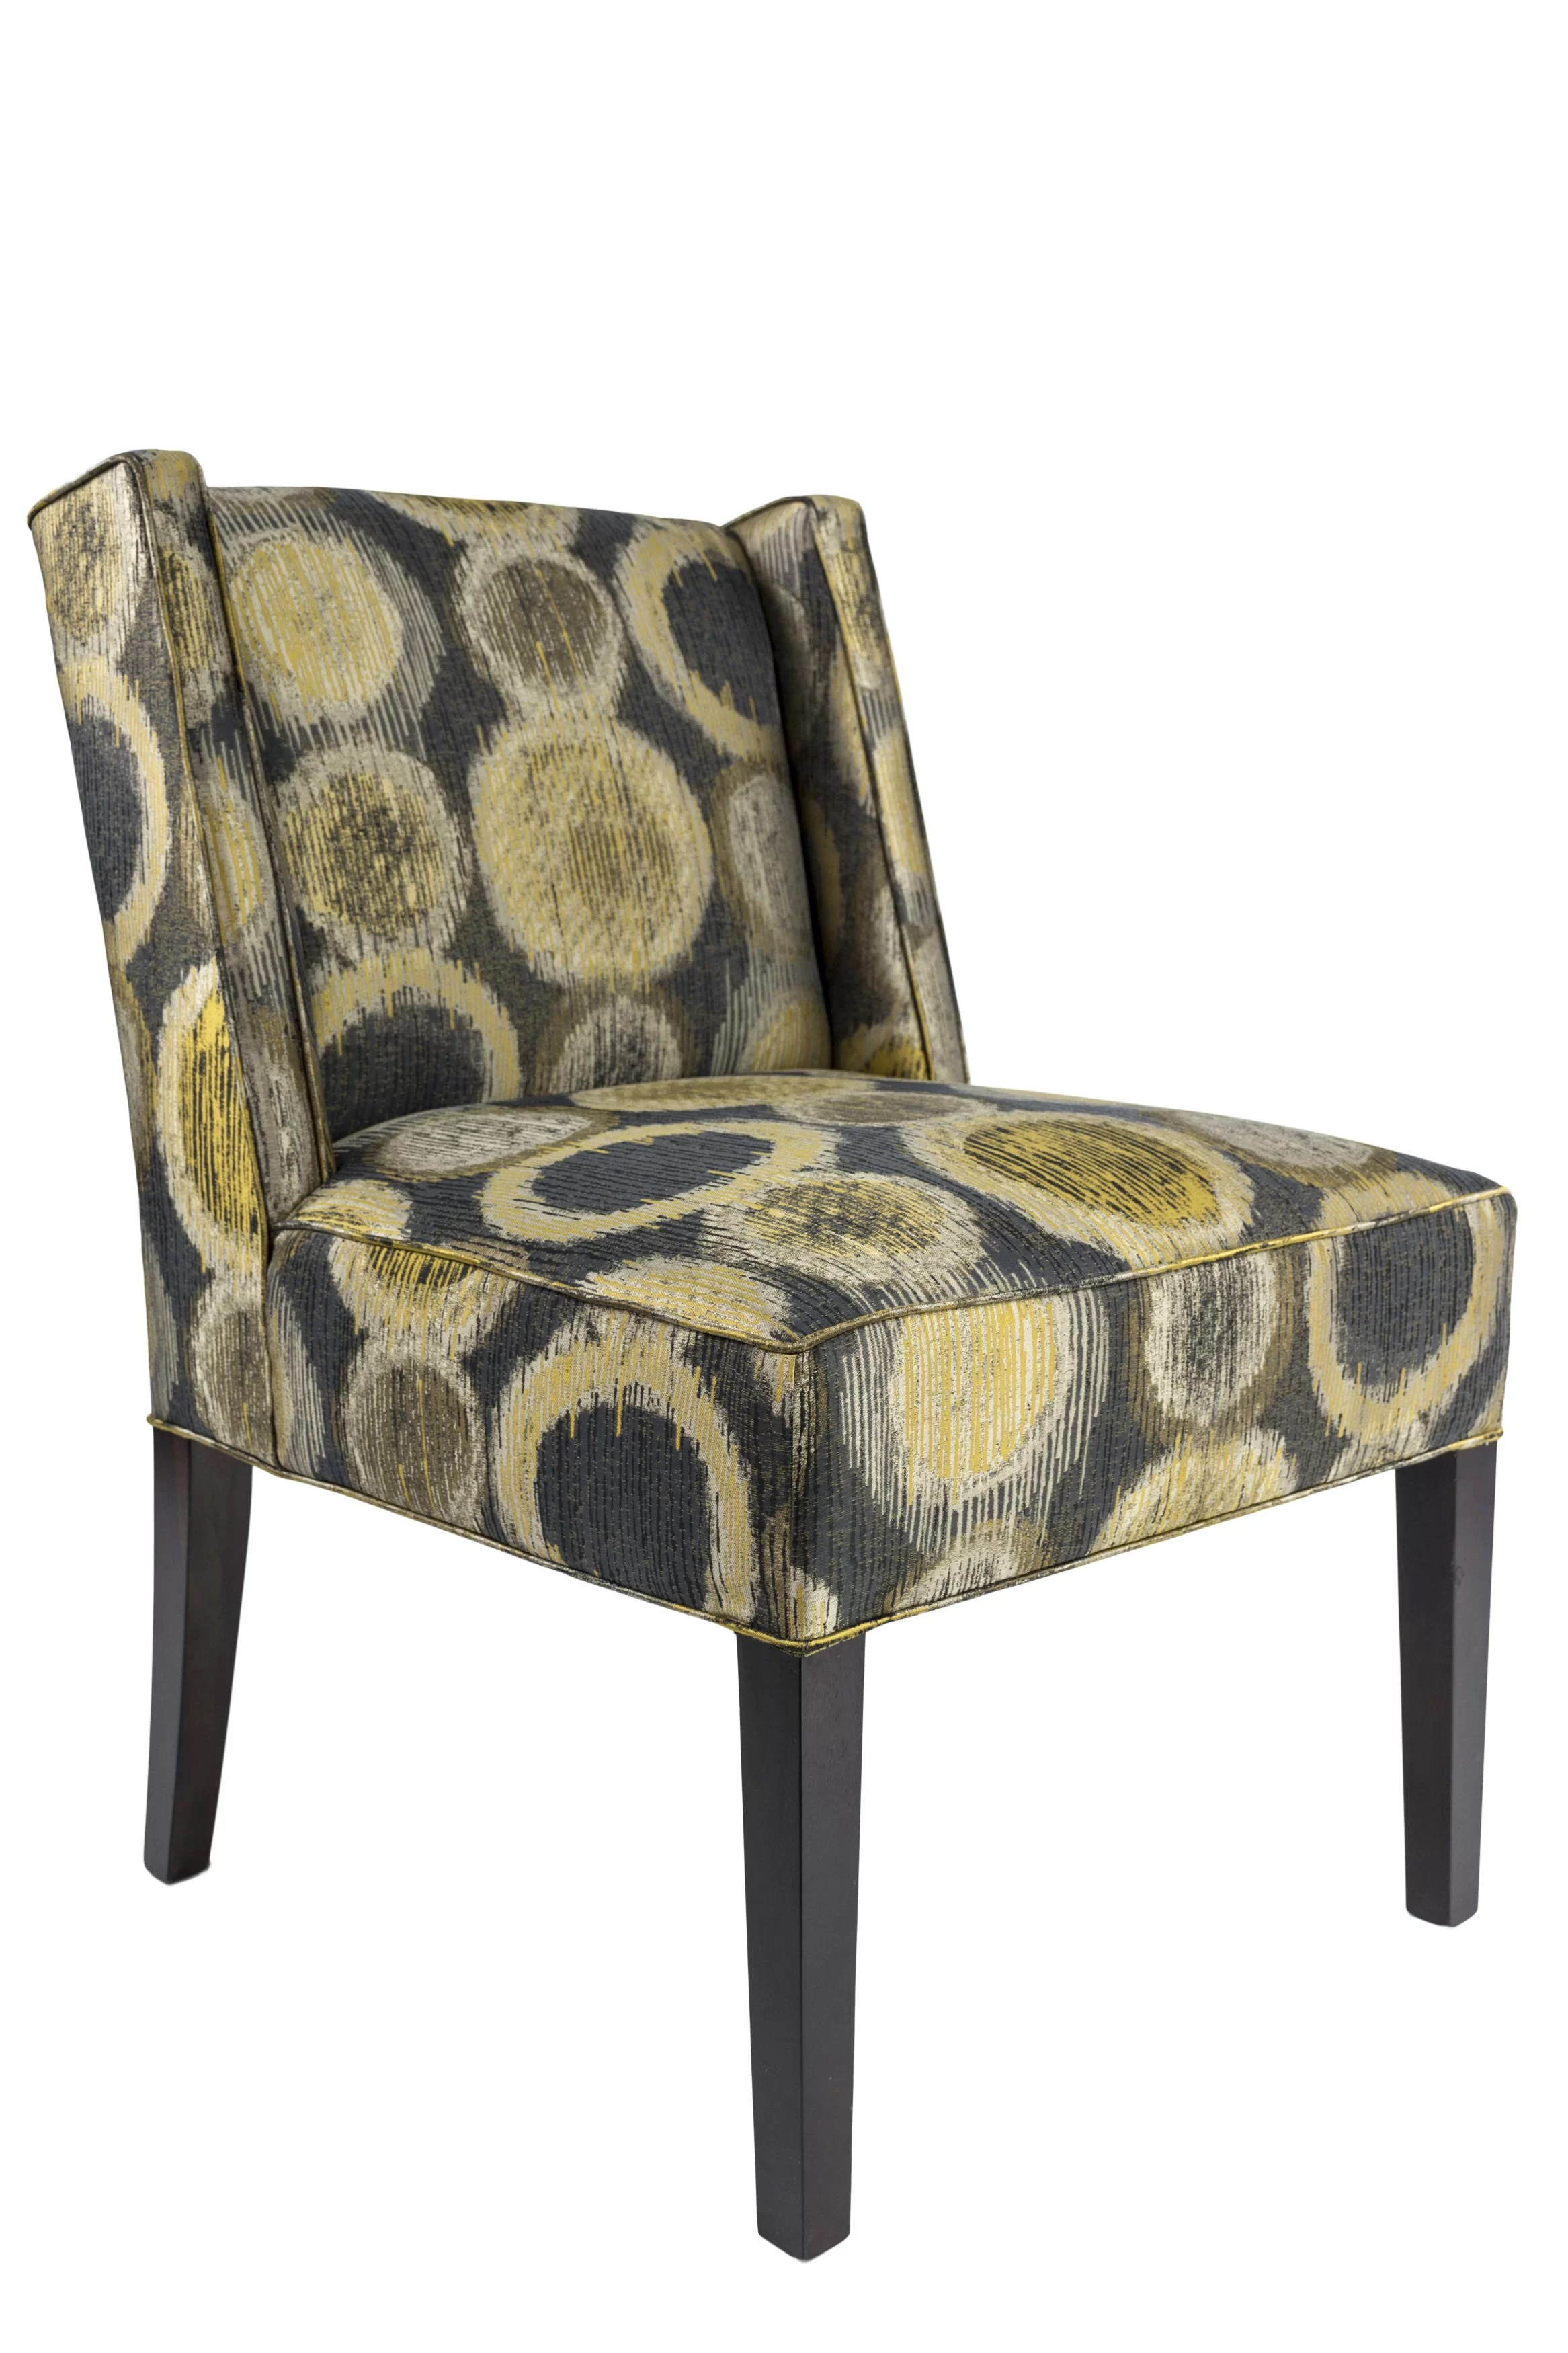 upholstered slipper chair reclining chairs for sale winston porter hulings wayfair